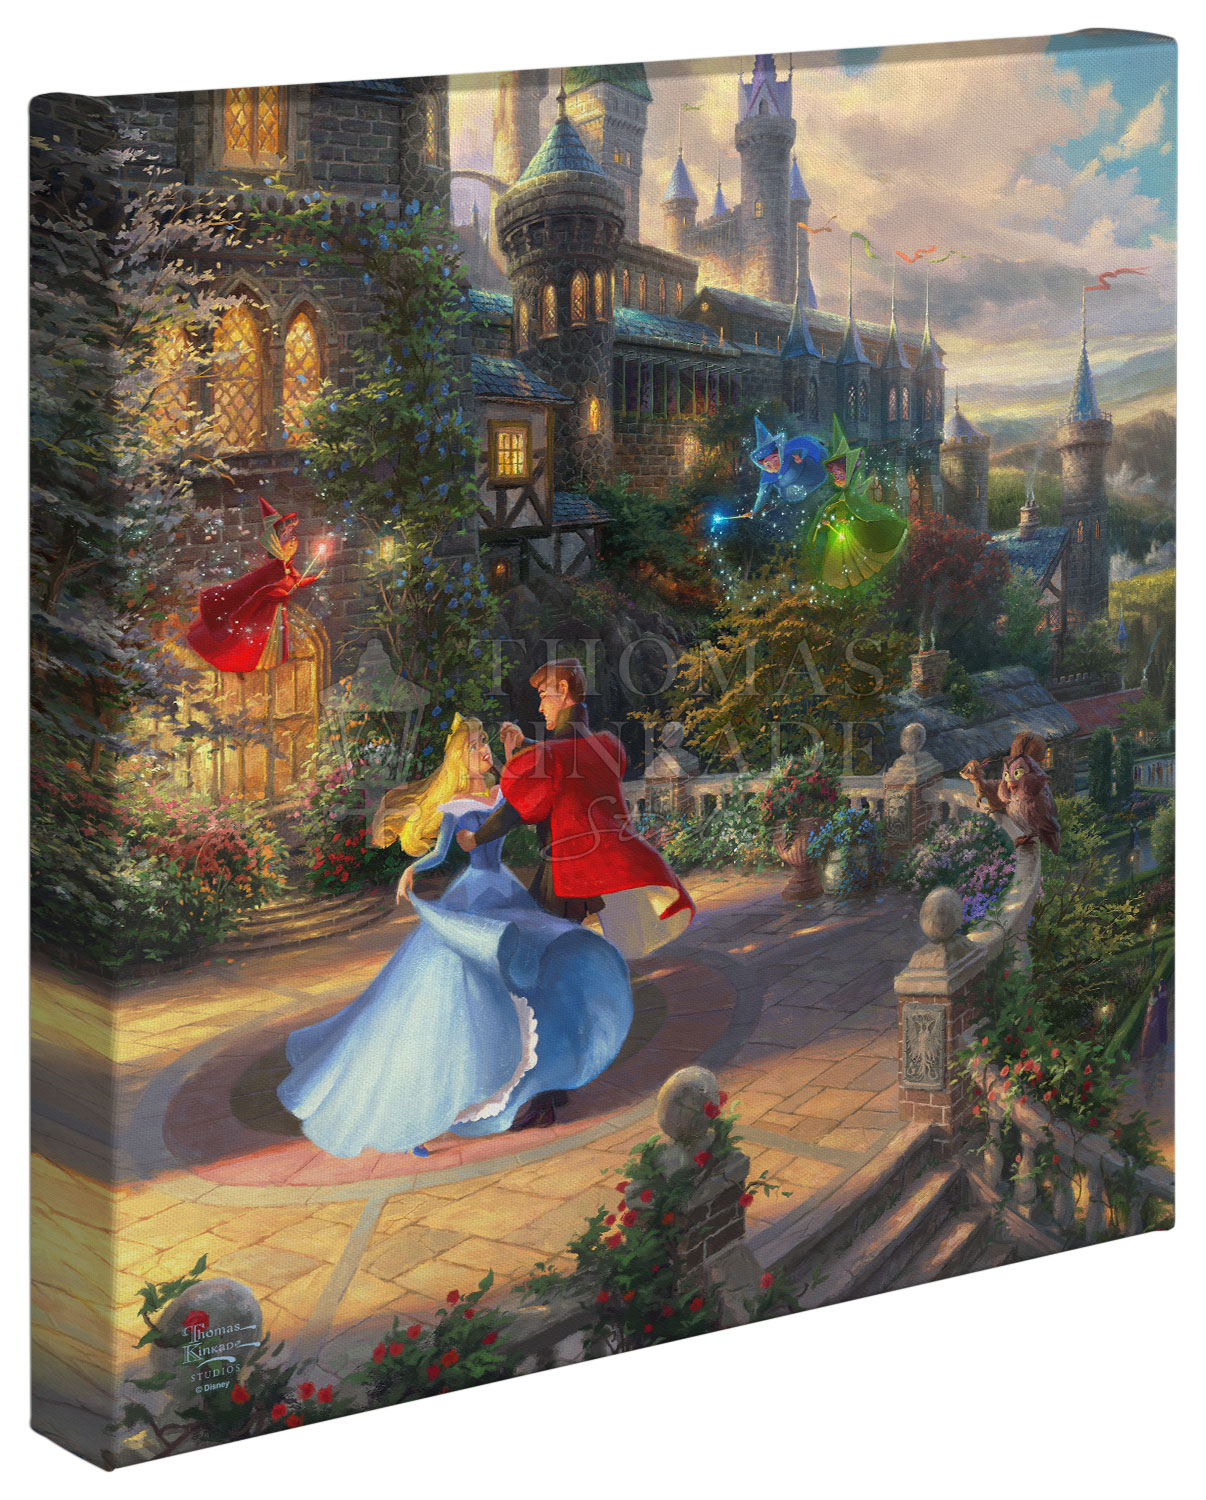 Disney Sleeping Beauty Dancing in the Enchanted Light – 14″ x 14″ Gallery Wrapped Canvas